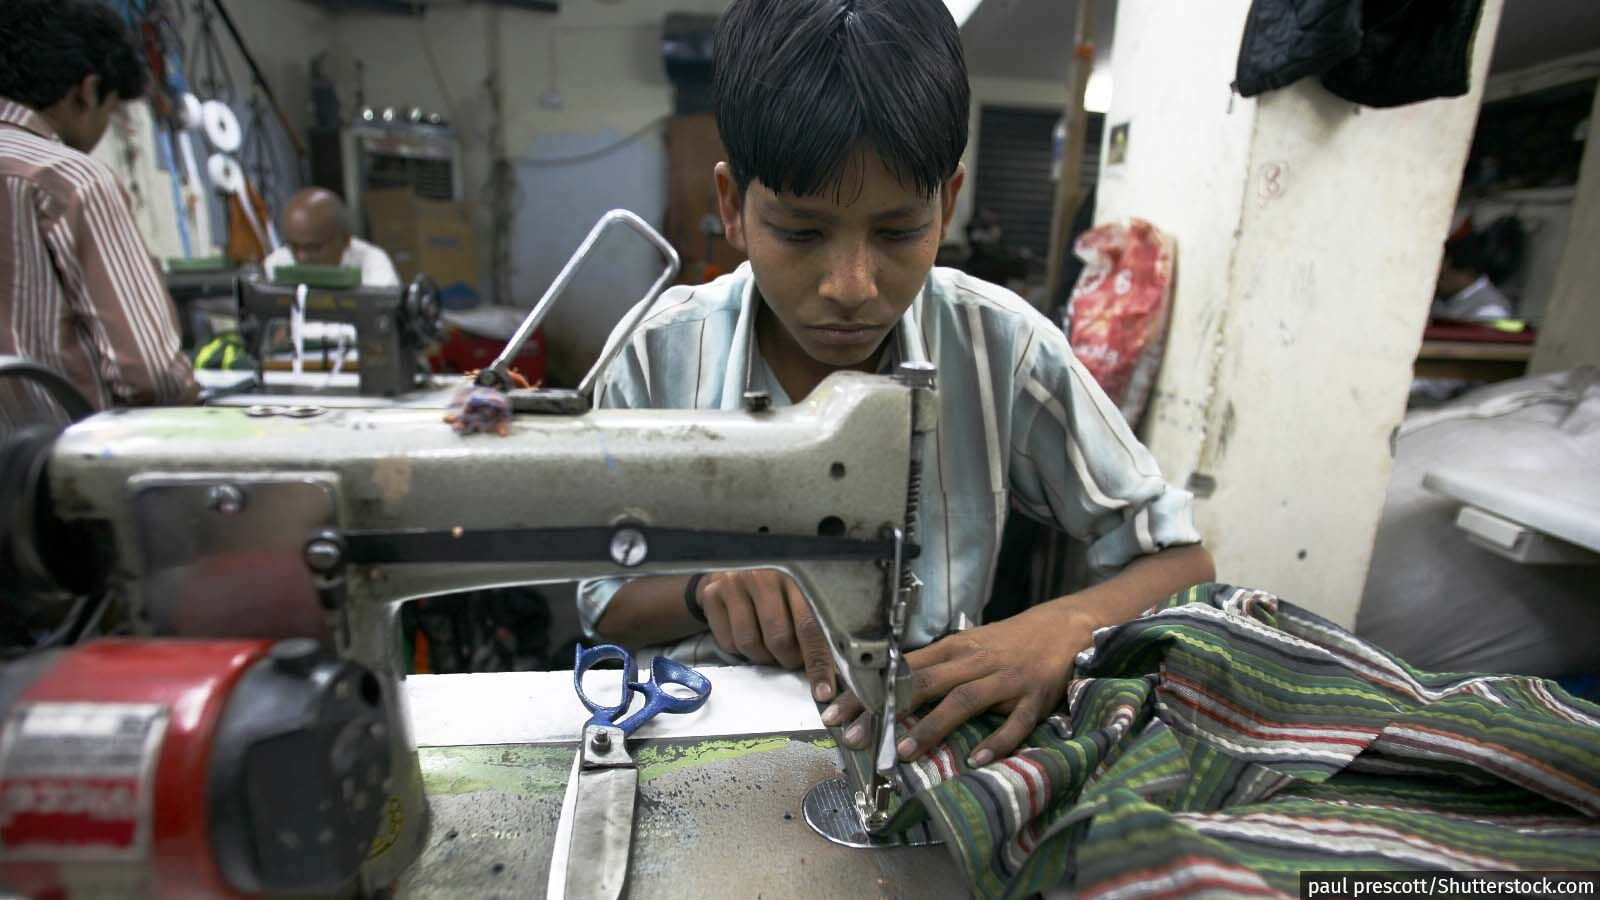 How Child Labour Persists Because Of Gaps In Access To Benefits